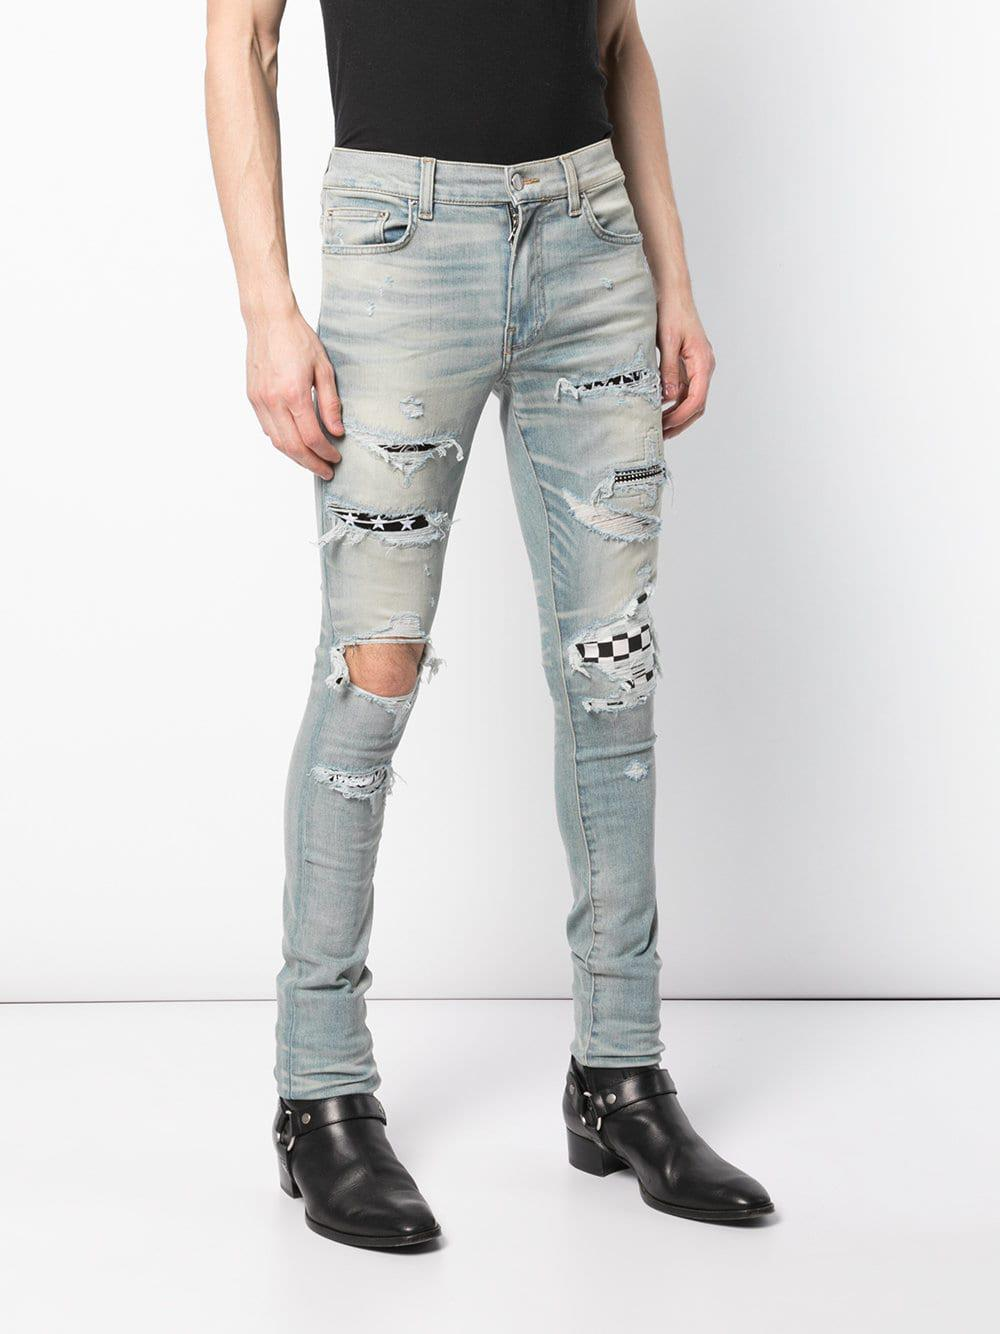 reputable site skate shoes coupon code Art Patch Skinny Jeans